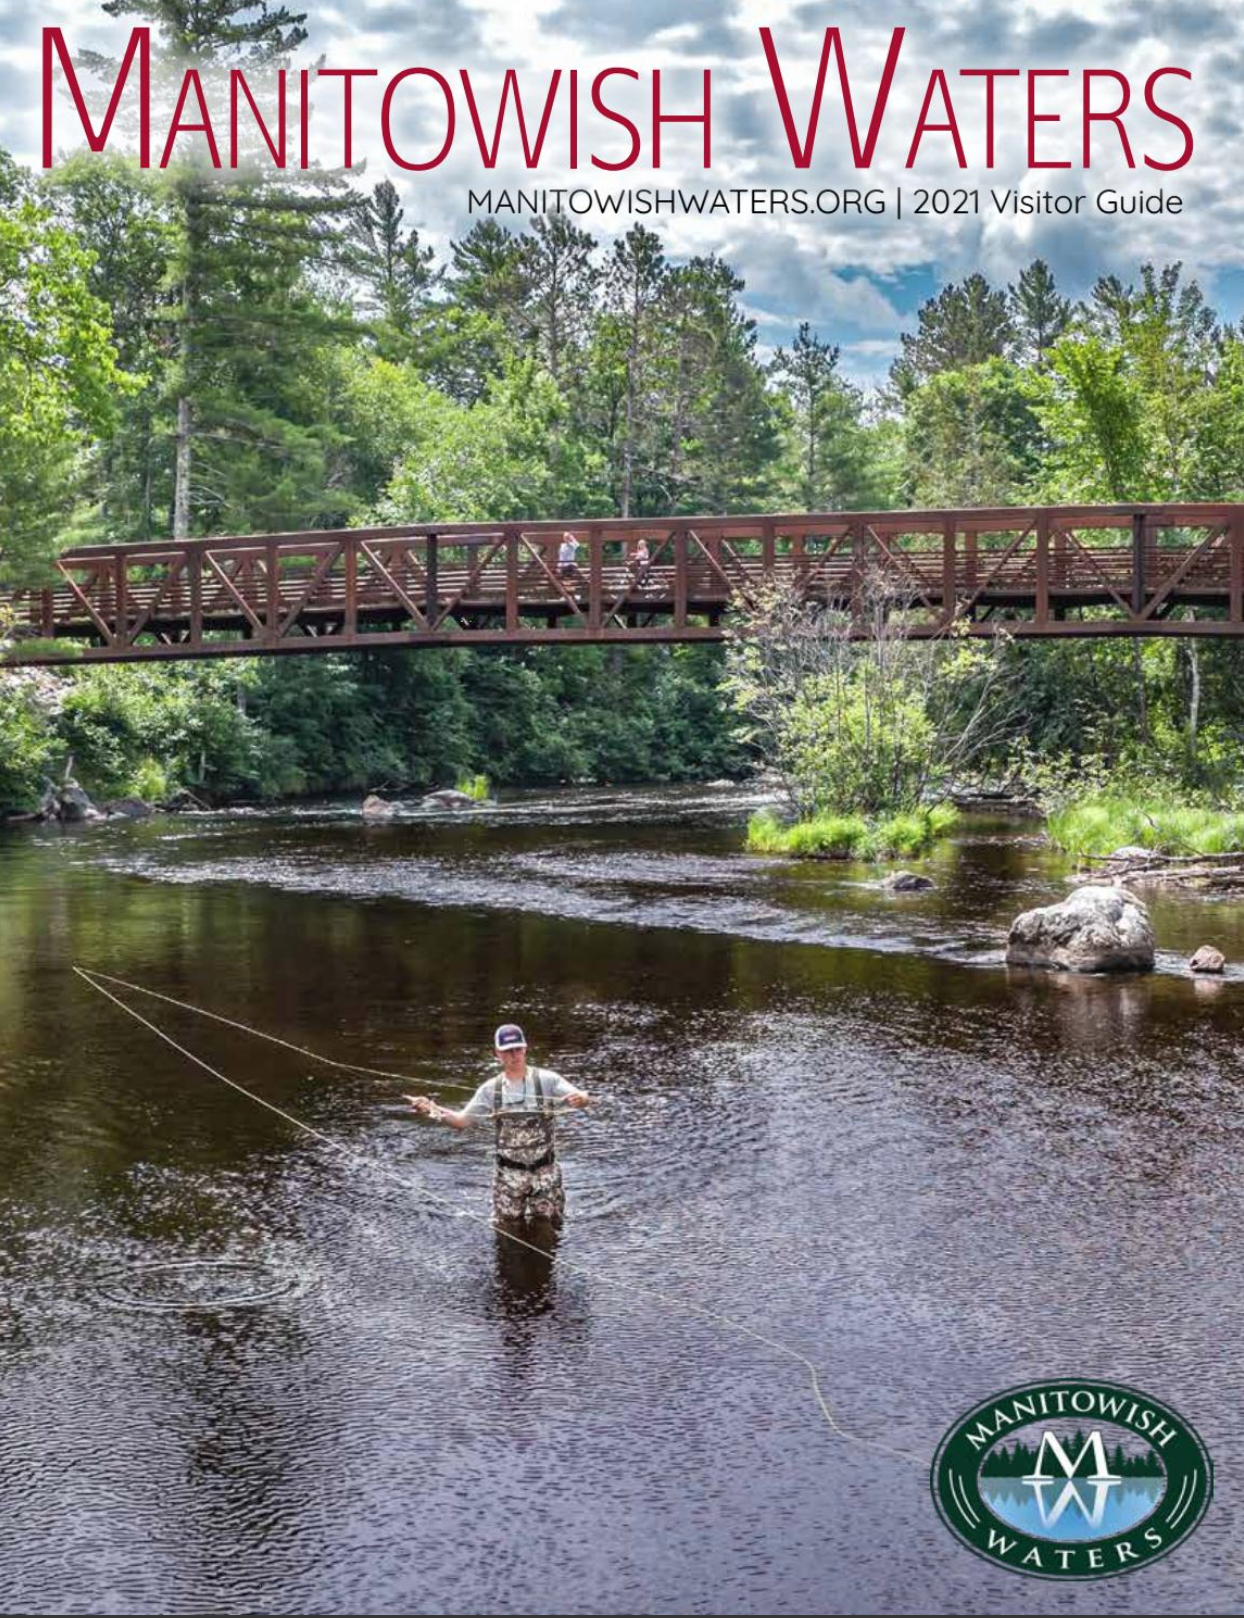 2021 Manitowish Waters Visitor Guide